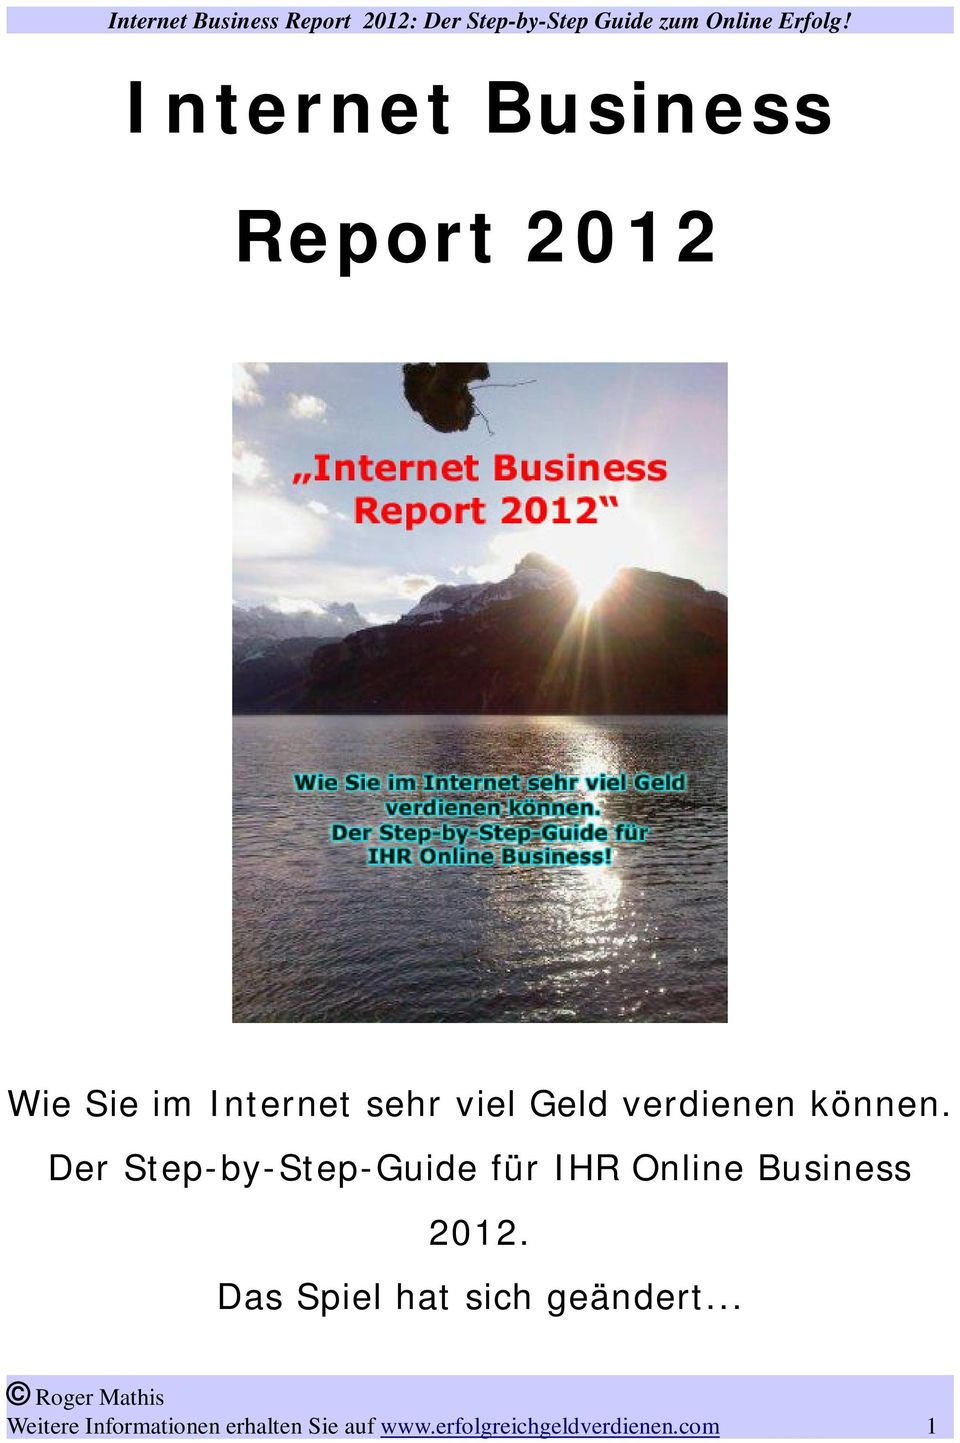 Der Step-by-Step-Guide für IHR Online Business 2012.